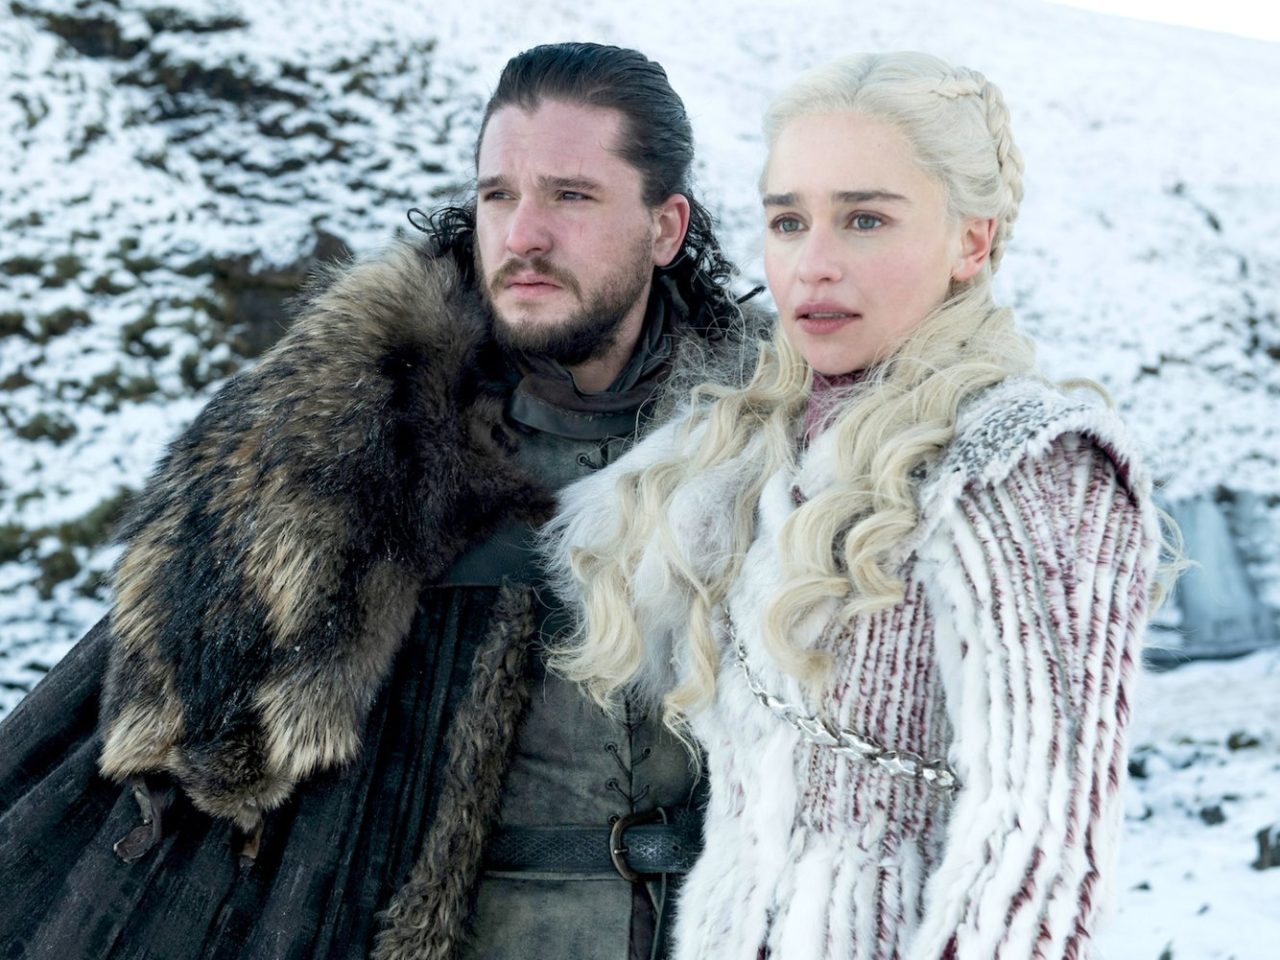 Dany (Emilia Clarke) and Jon (Kit Harrington) stand together with snow covered mountains in the background